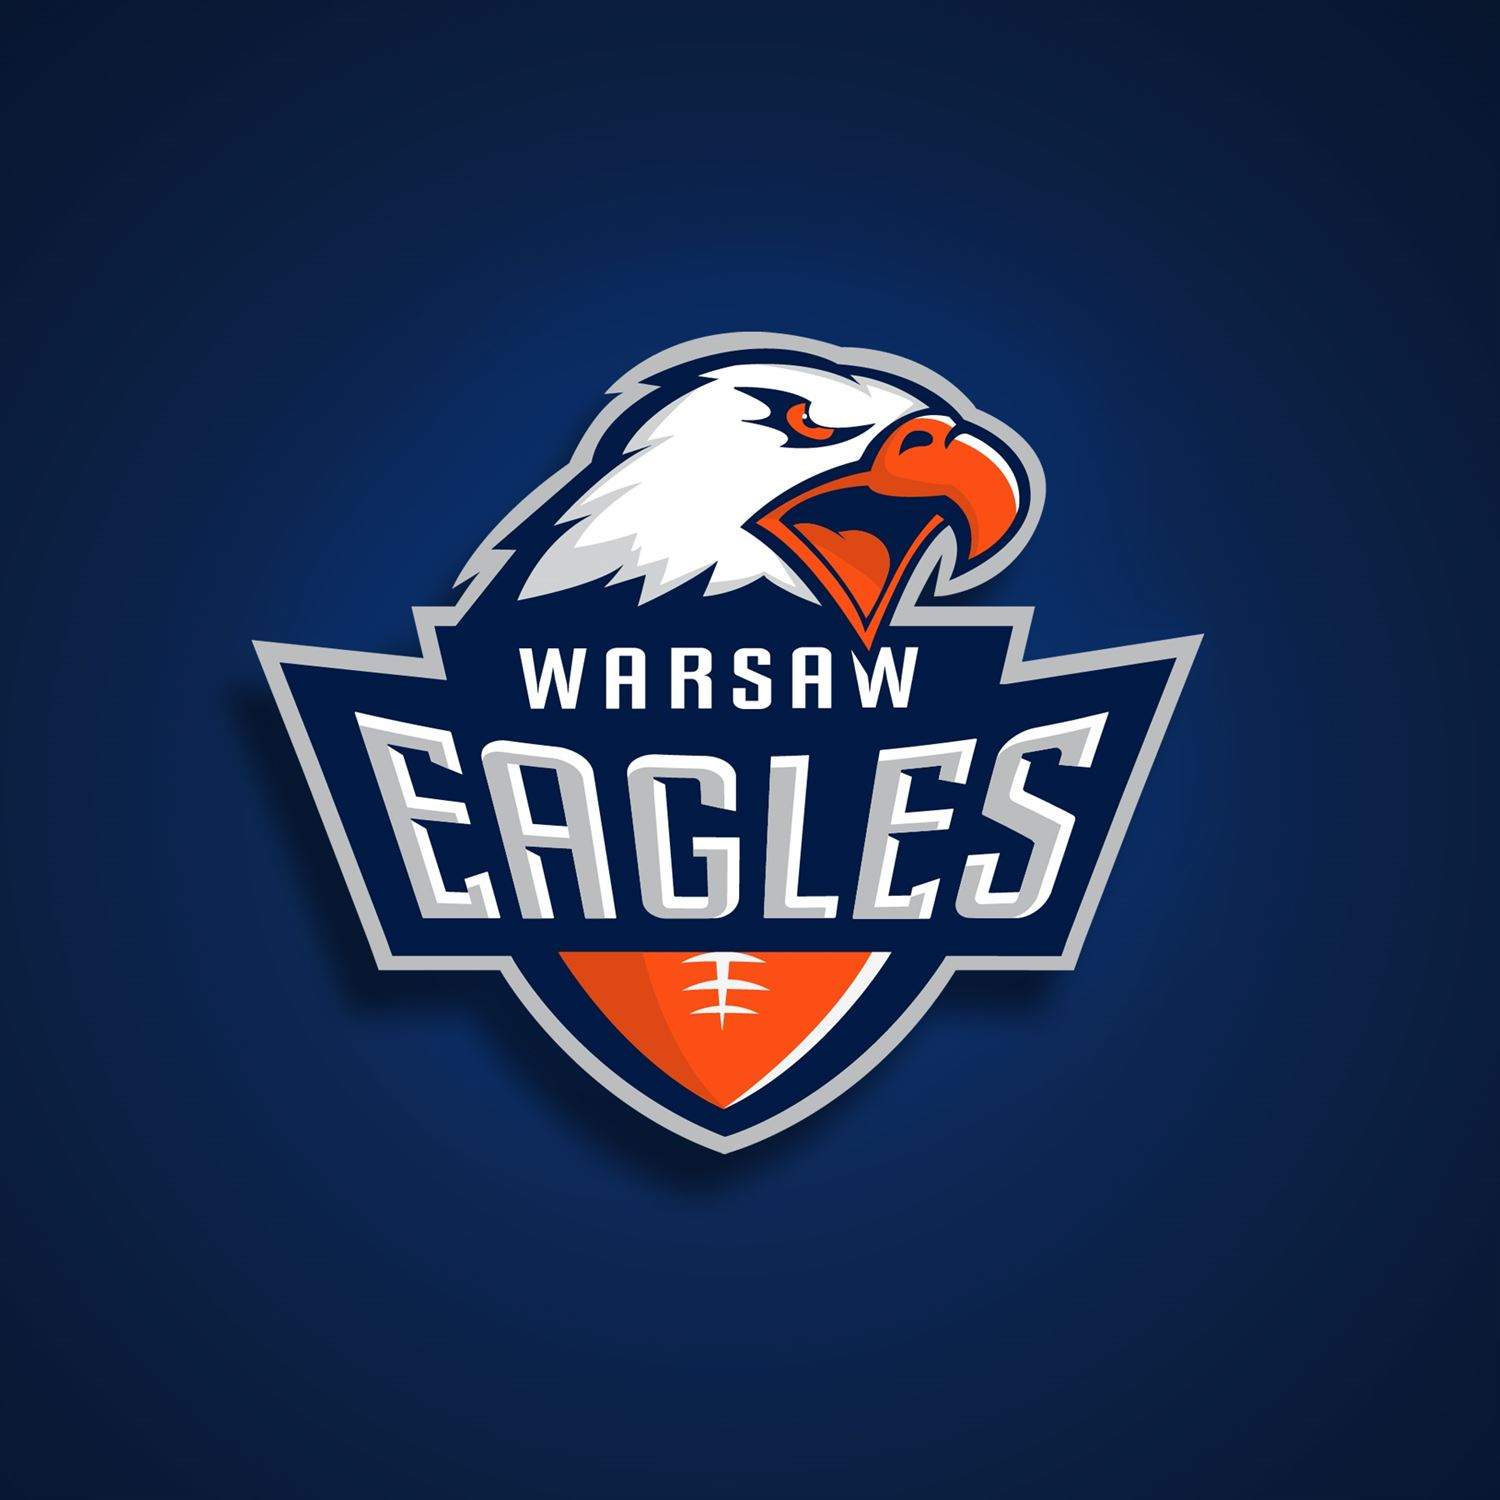 Warsaw Eagles - Men's Varsity Football